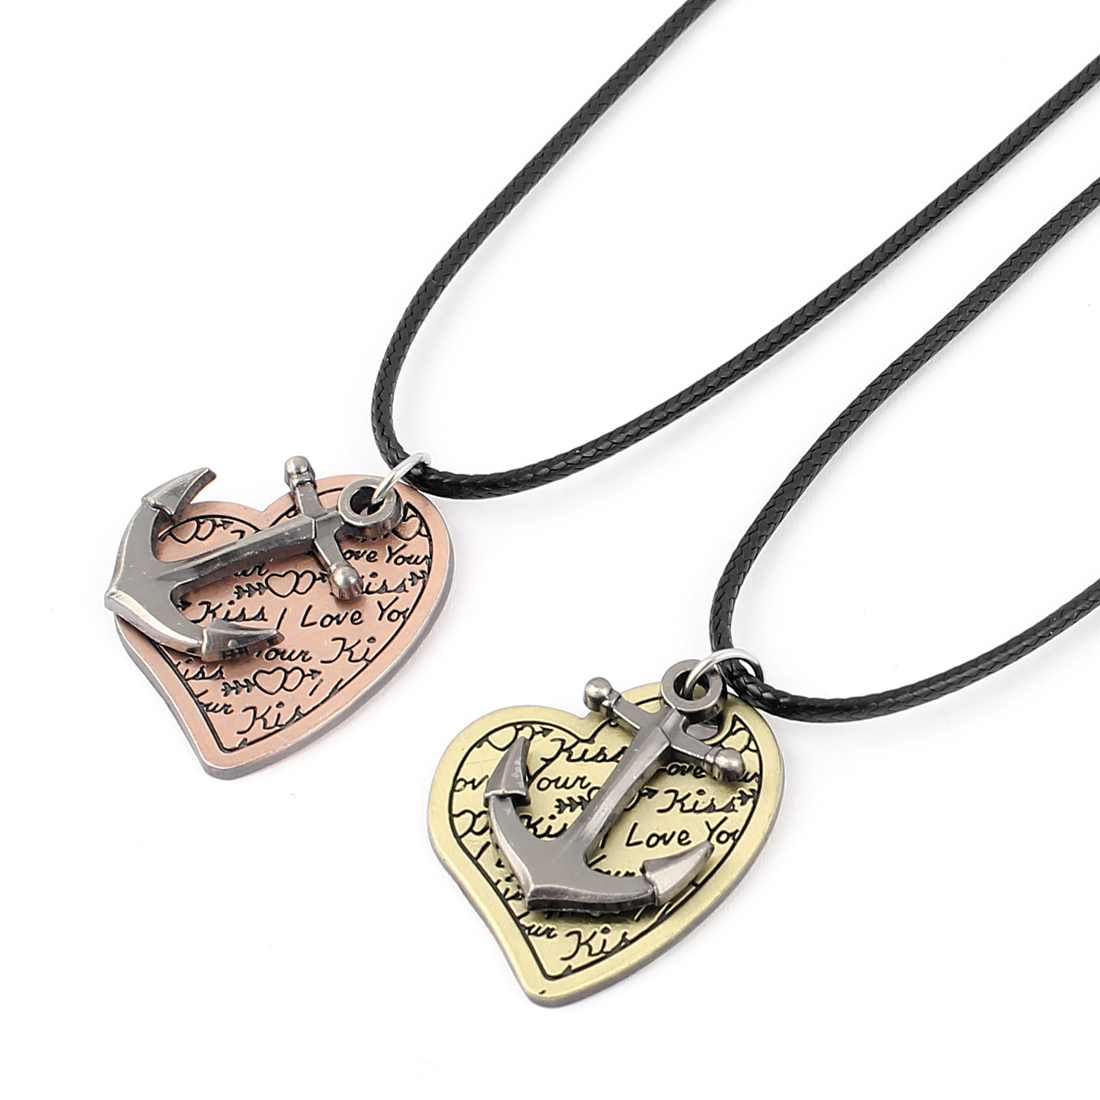 Lover Couple Metal Anchor Heart Pendant Neck Ornament Chain Necklace 2pcs